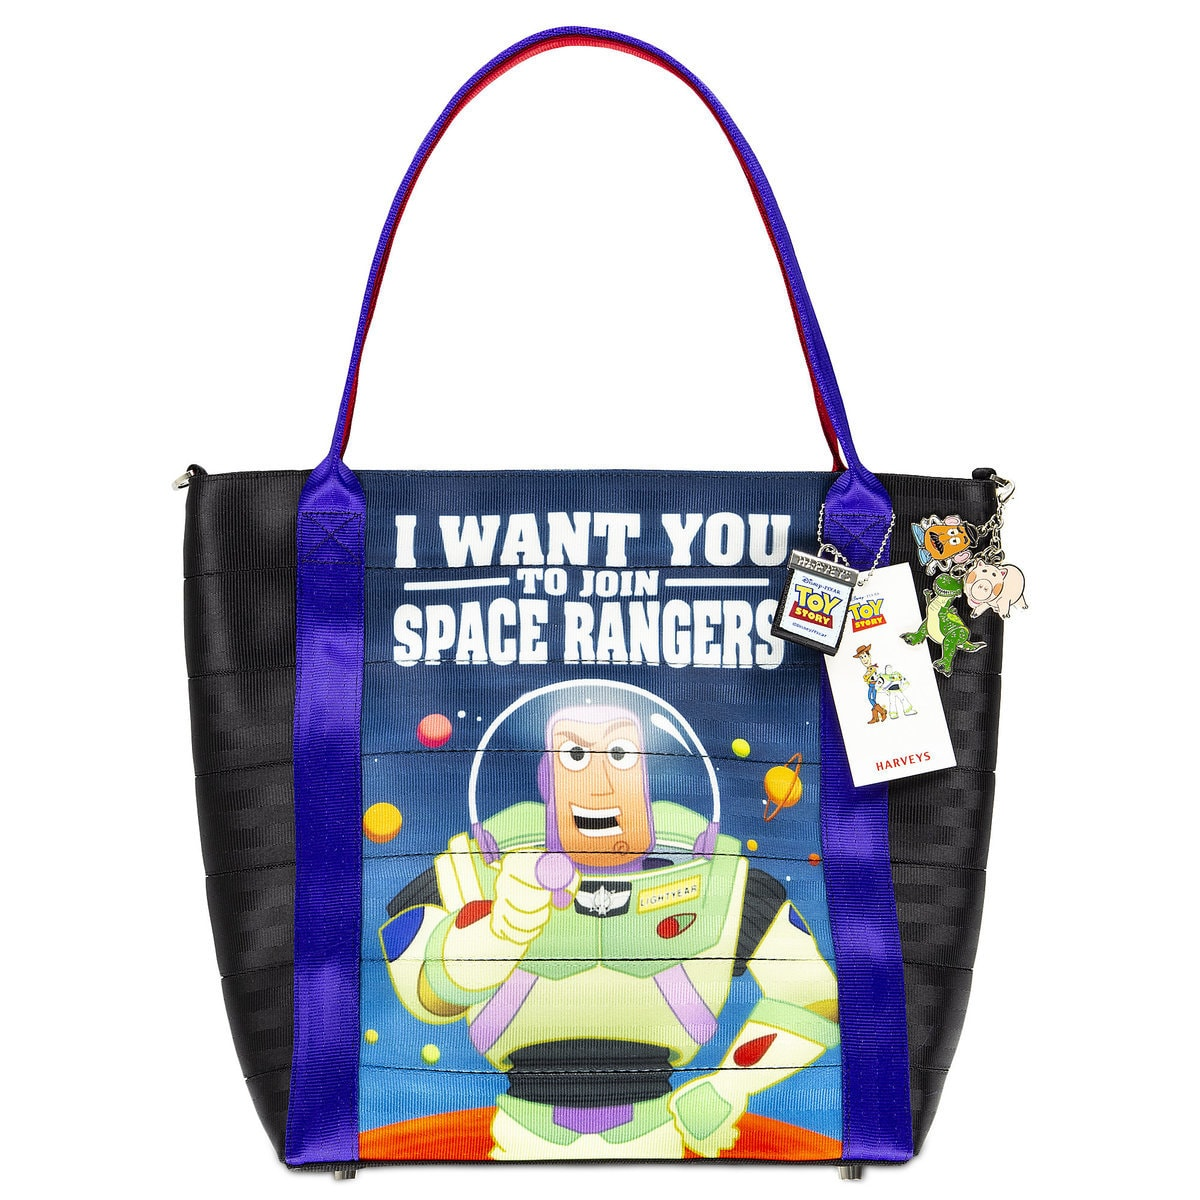 96a2c807127c7 Product Image of Toy Story Posters Tote by Harveys # 1